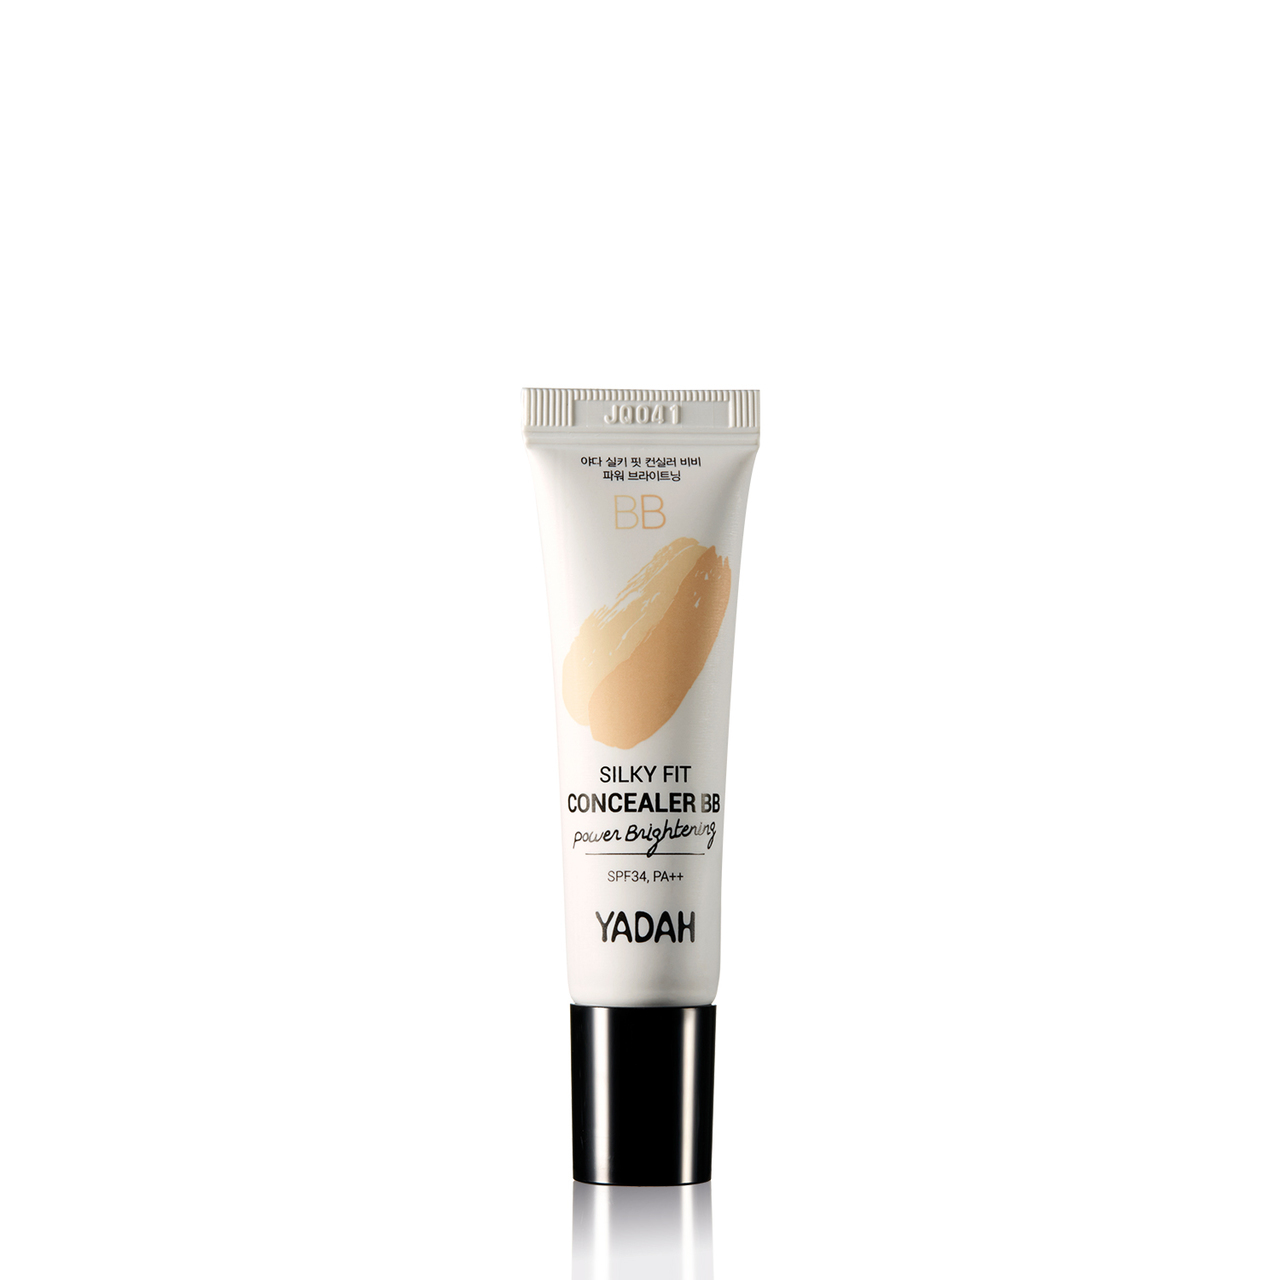 Yadah Silky Fit Concealer BB Power Brightening Mini